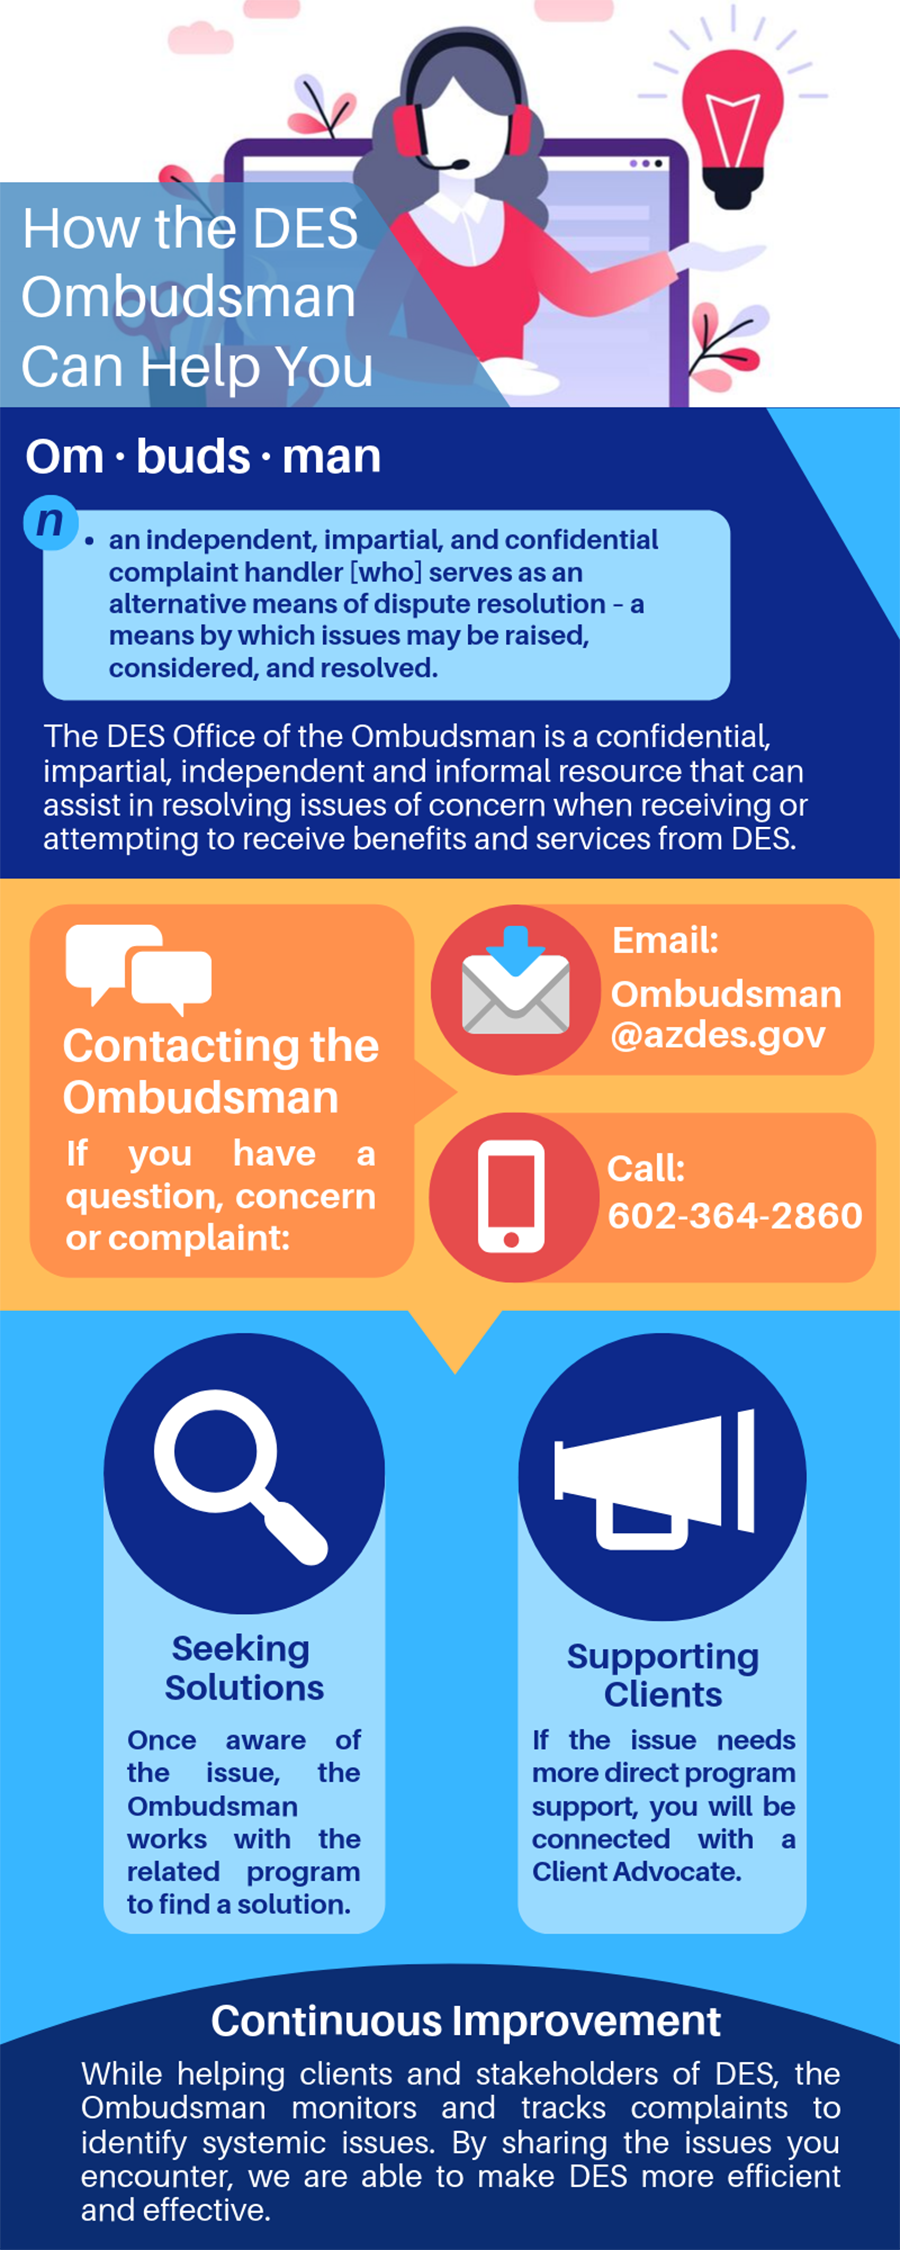 Facts and figures about DES Ombudsman